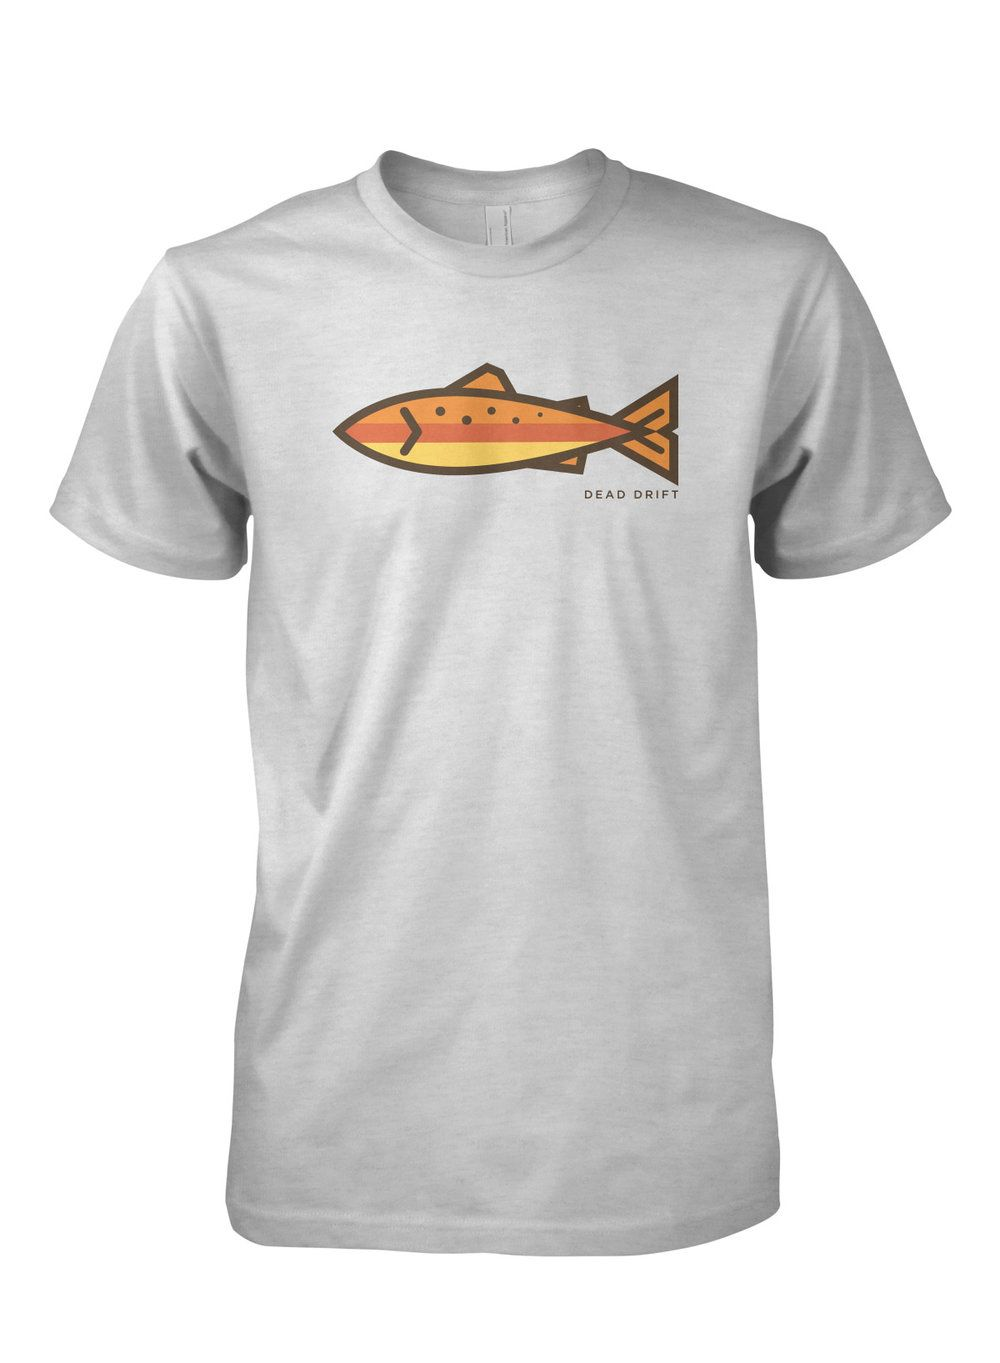 Fly Native Trout | Fly Fishing Gear | Shirts, Dad to be shirts